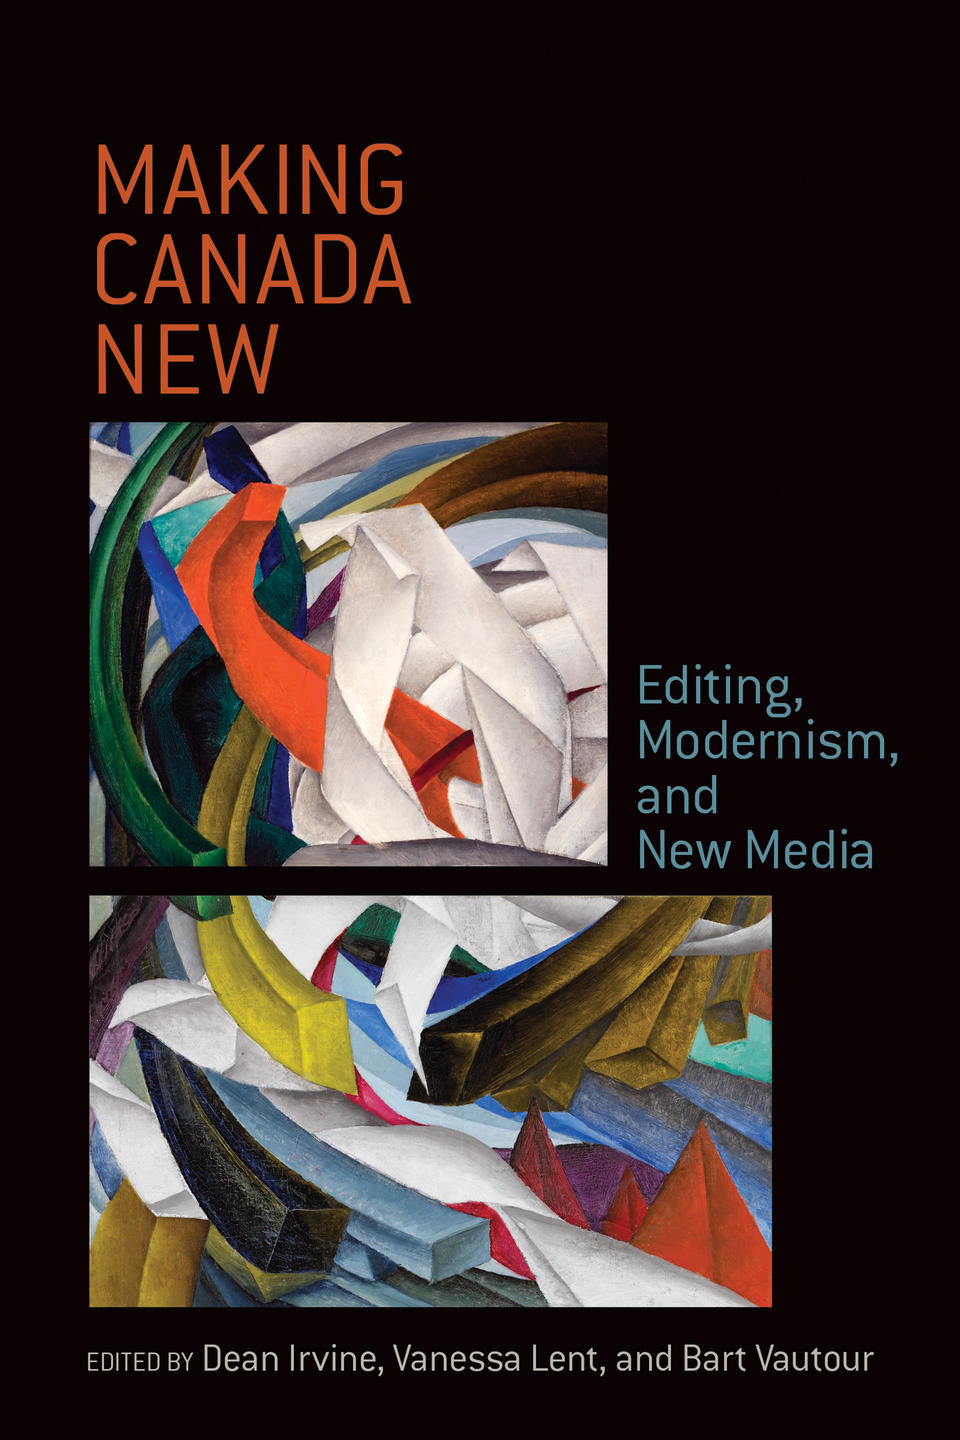 Editing Modules, Collecting Editions: The Present and Future of Small-Scale Digital Critical Editions Large-scale digital projects are unwieldy, expensive, and quickly out of date. Prototyping small, modular editions is the way to go. Making Canada New: Editing, Modernism, and New Media. Edited by Dean Irvine, Bart Vautour, and Vanessa Lent and published by the University of Toronto Press.